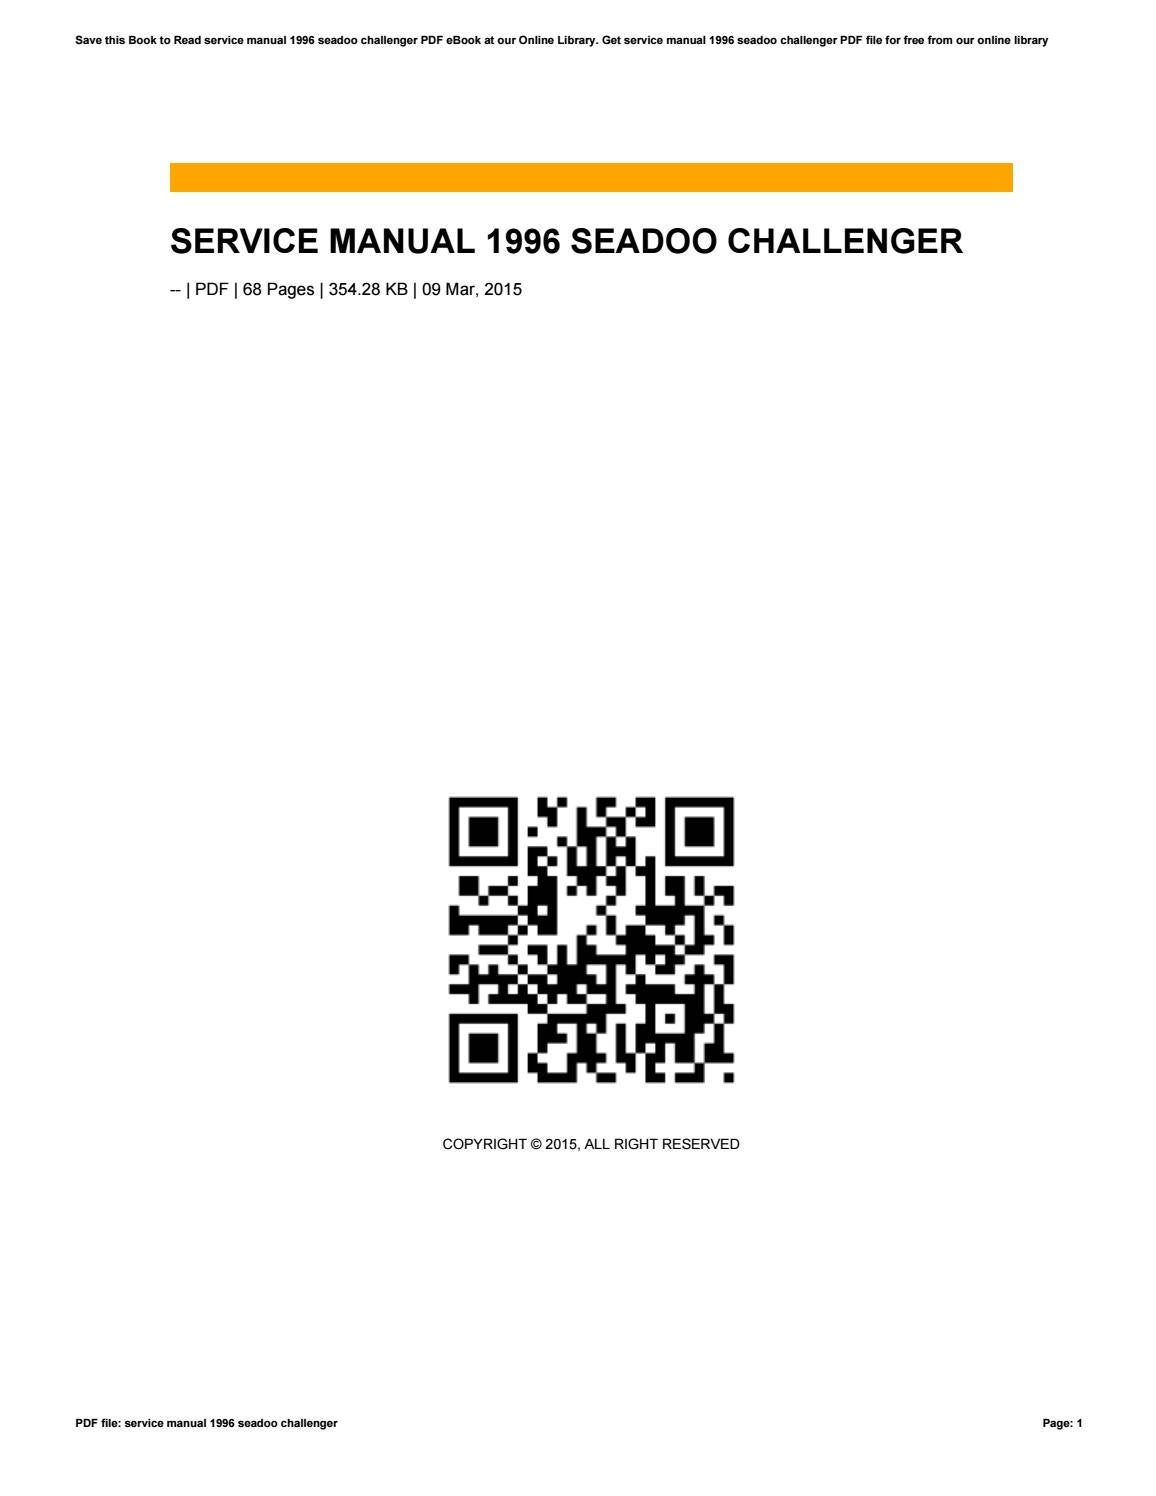 service manual 1996 seadoo challenger by apssdc31 issuu rh issuu com 1996 seadoo  challenger owners manual 1996 Seadoo Challenger Capacity